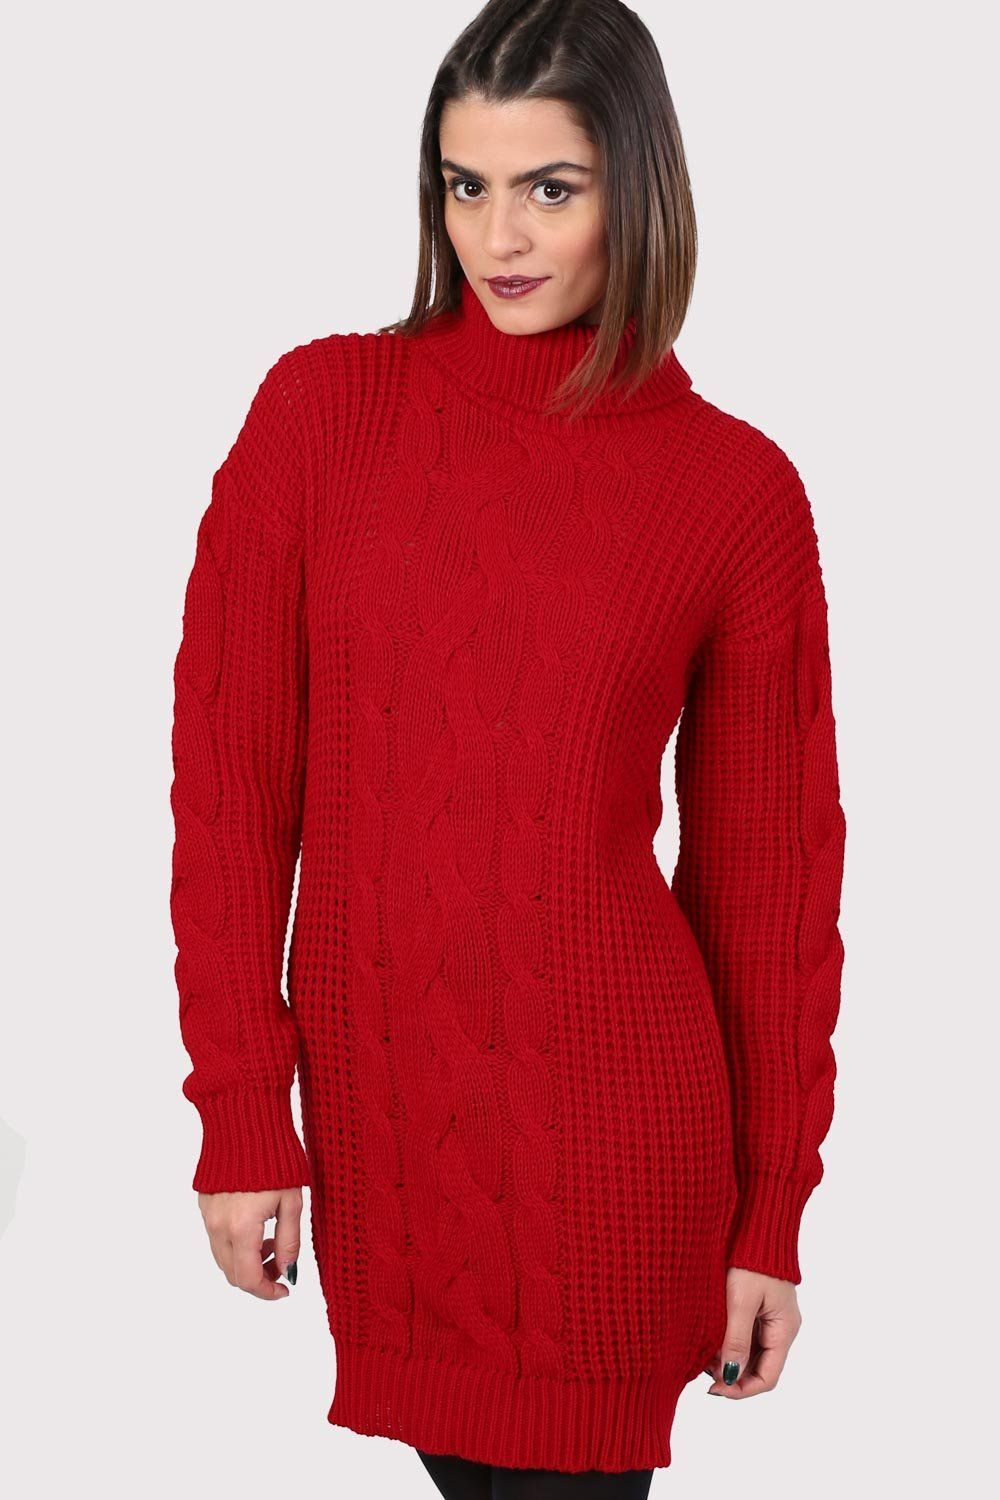 Cable Knit Long Sleeve Roll Neck Jumper Dress in Red 0